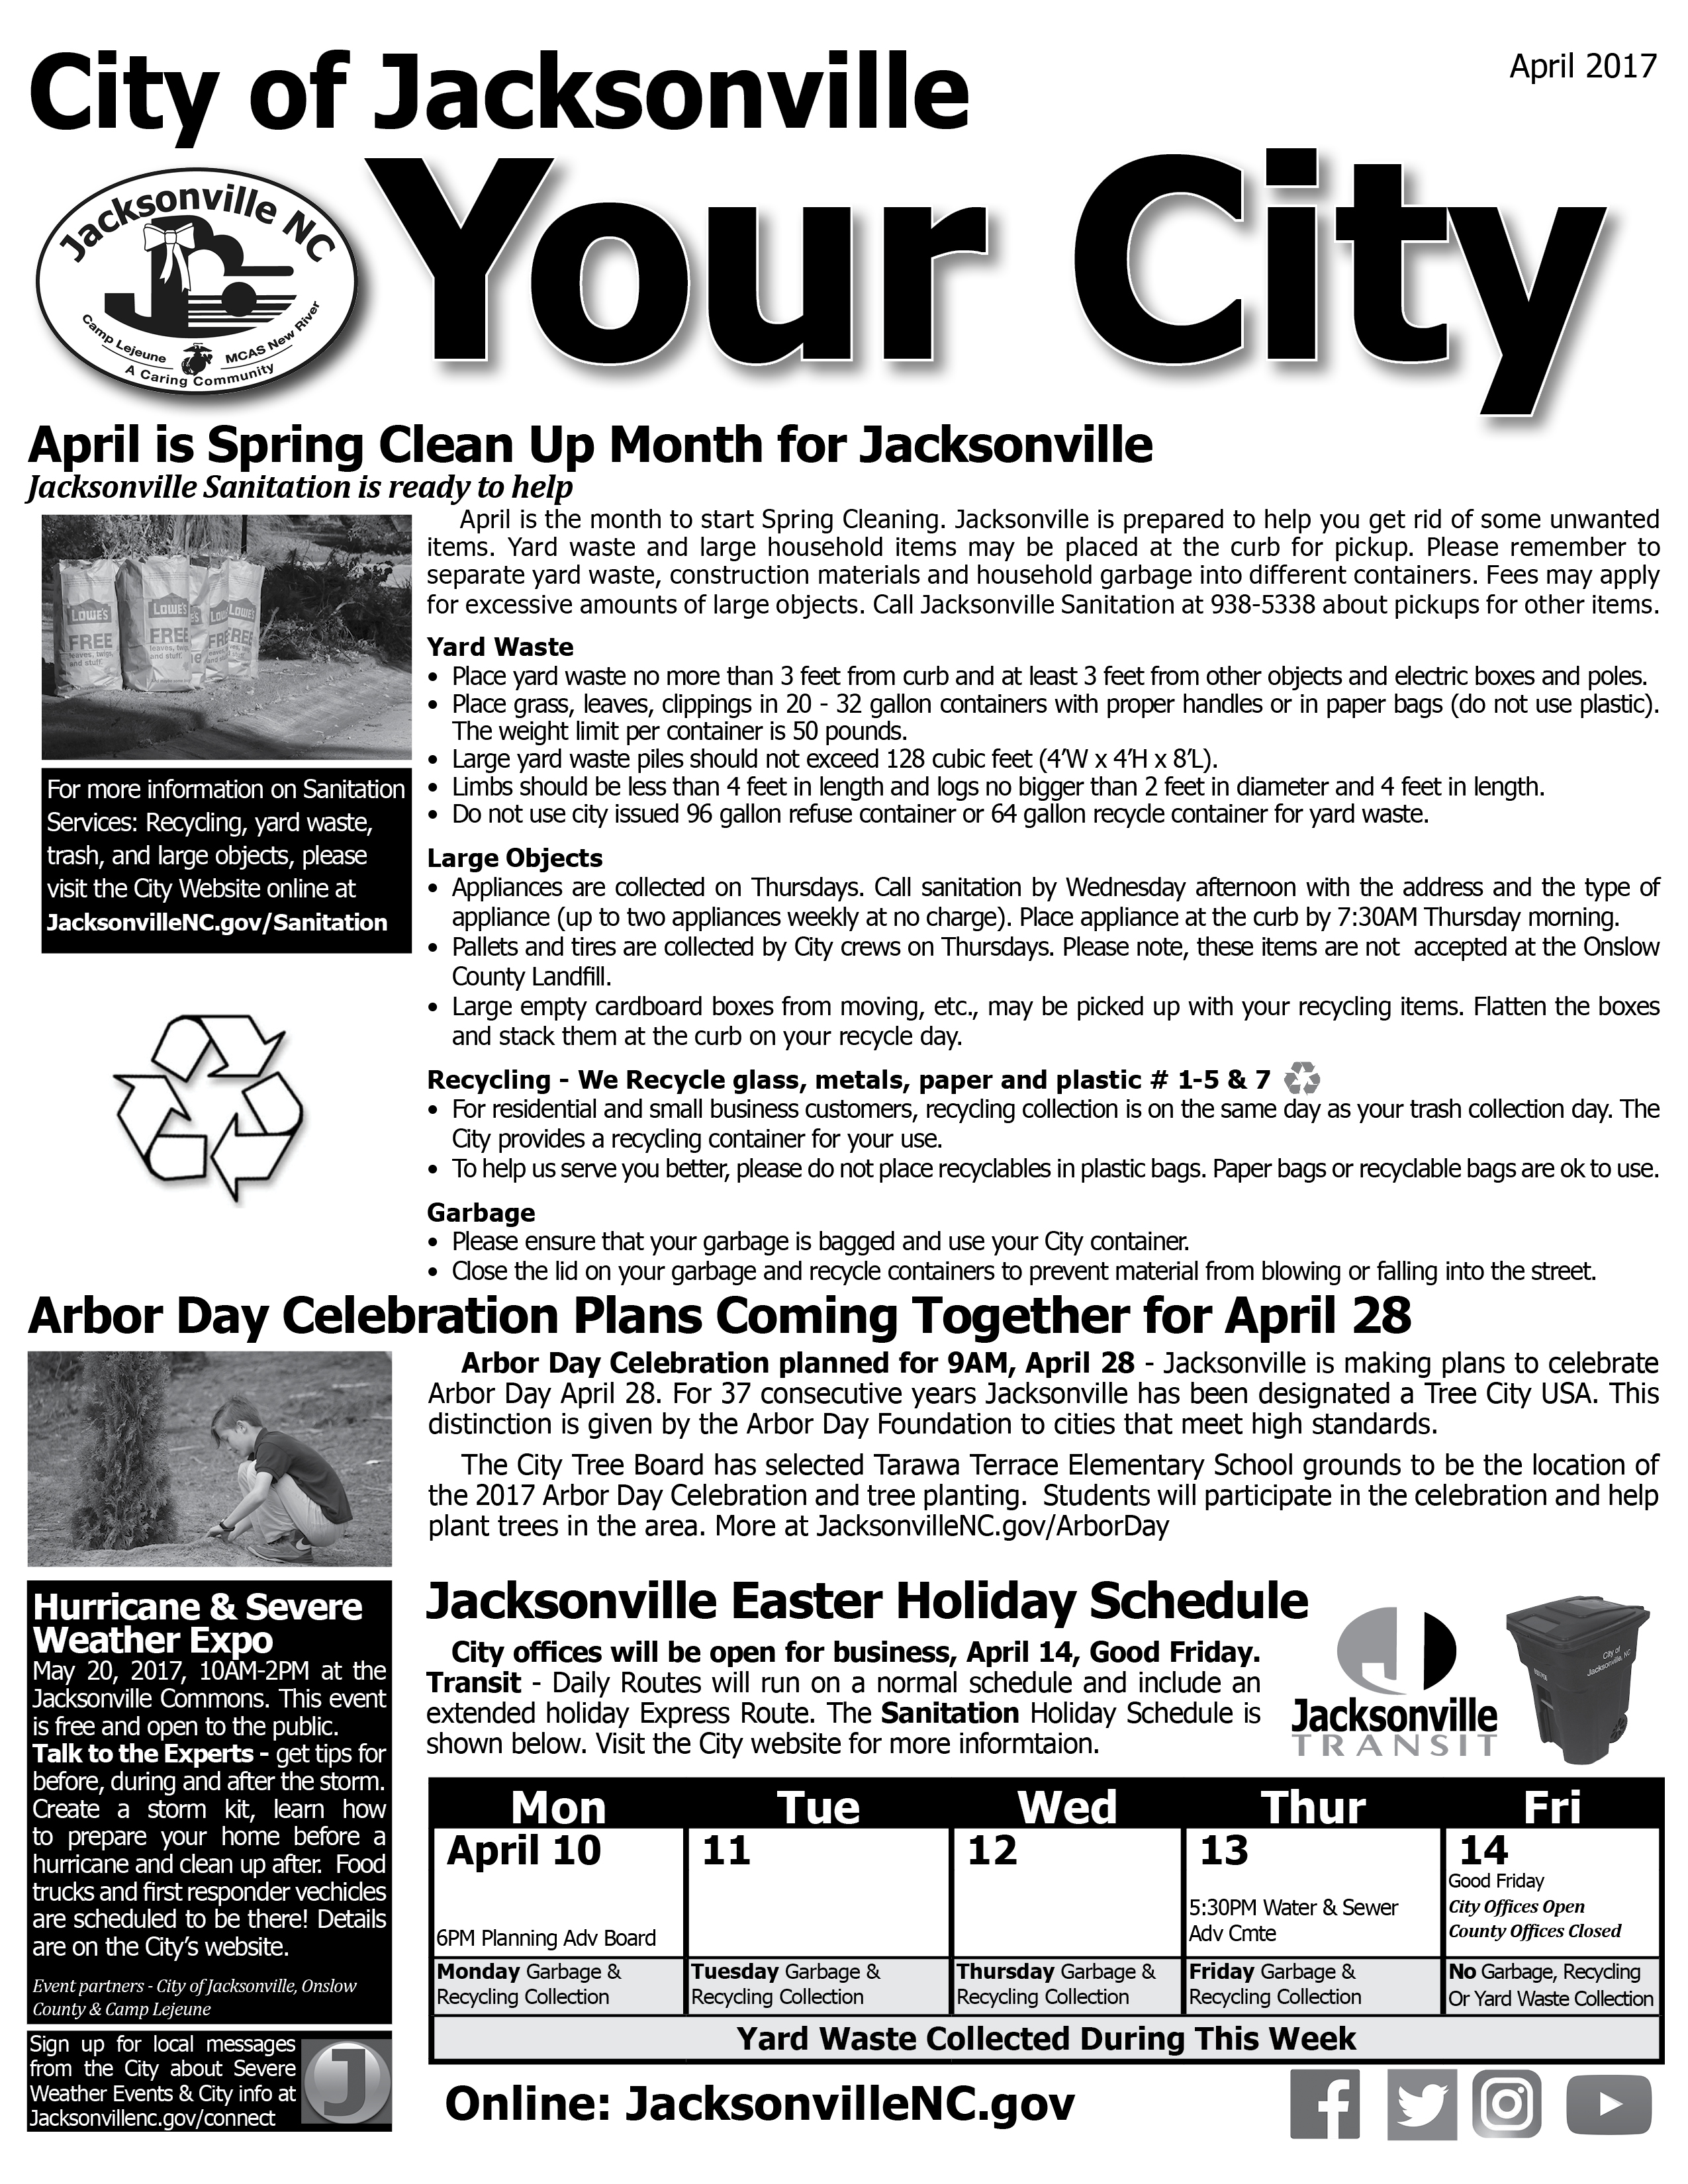 City of Jacksonville - Your City Flyer